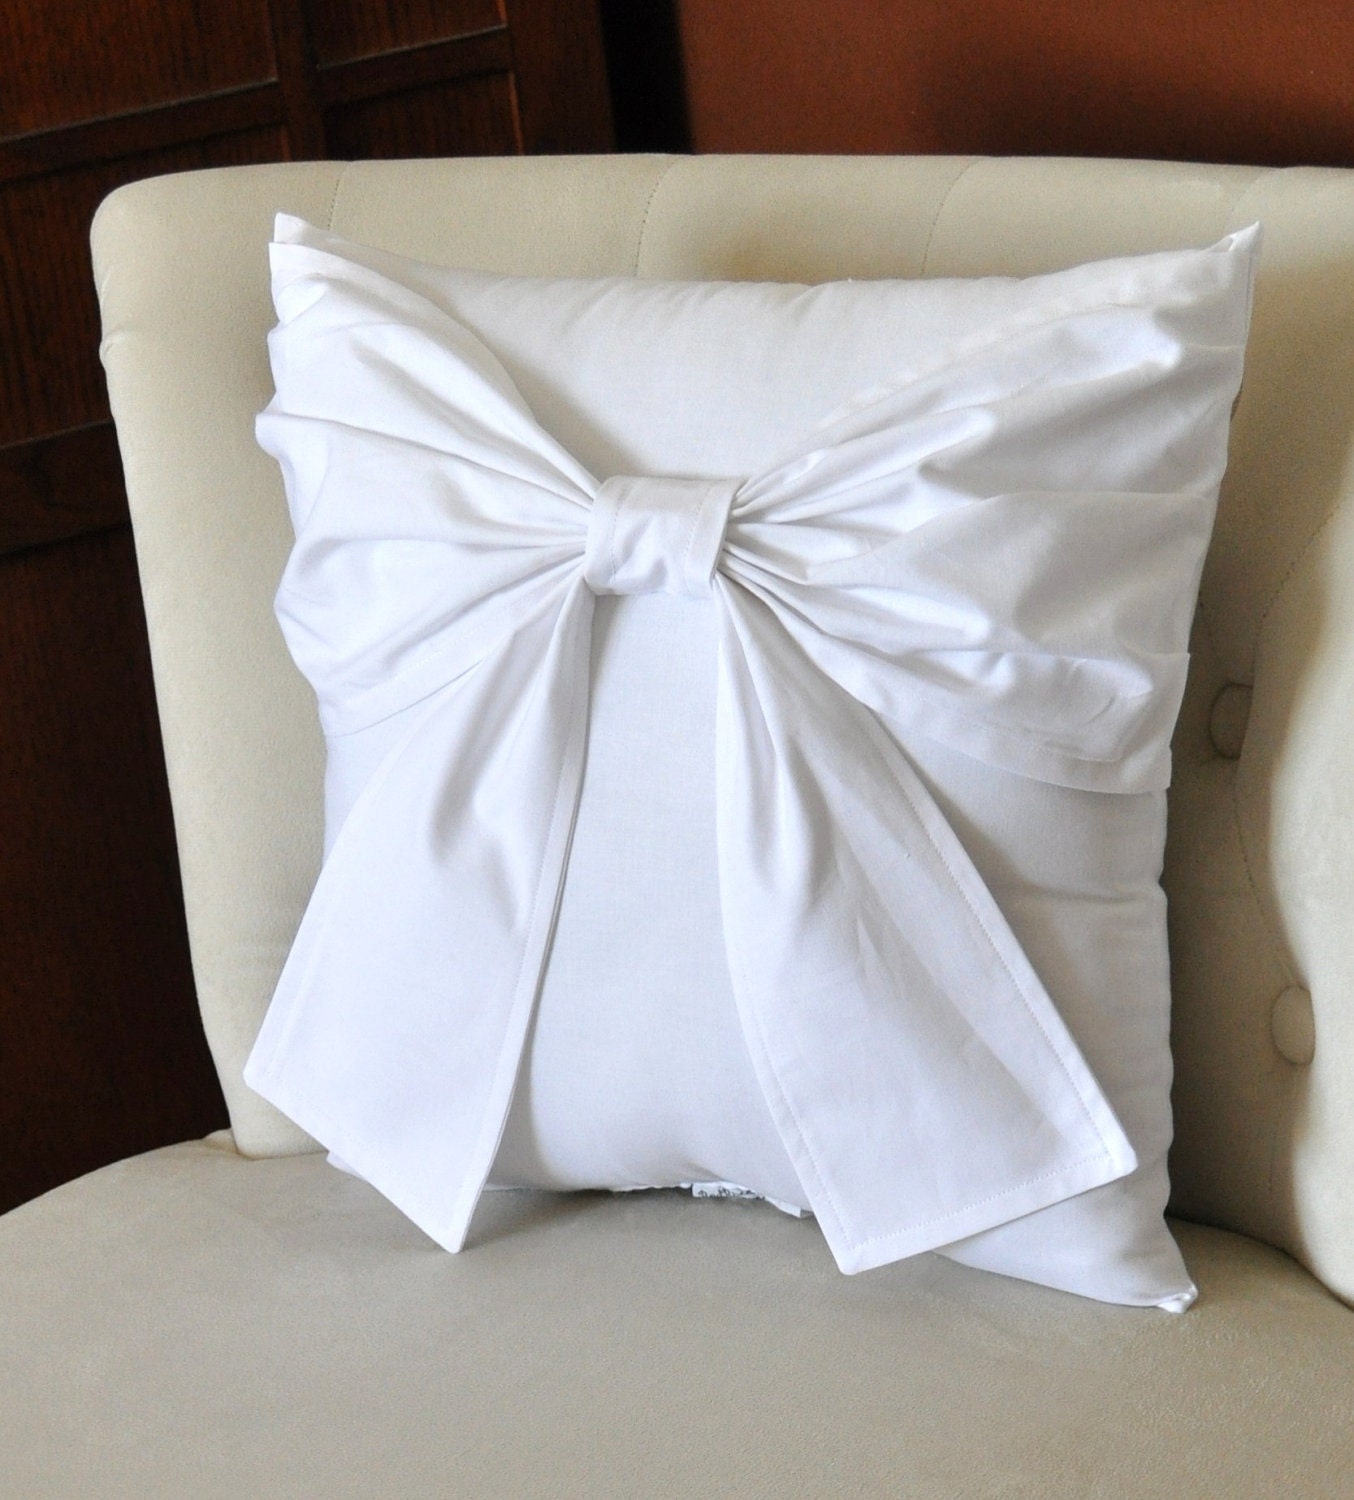 Large White Throw Pillow : Throw Pillow White Big Bow Accent Pillow 14x14 by bedbuggs on Etsy